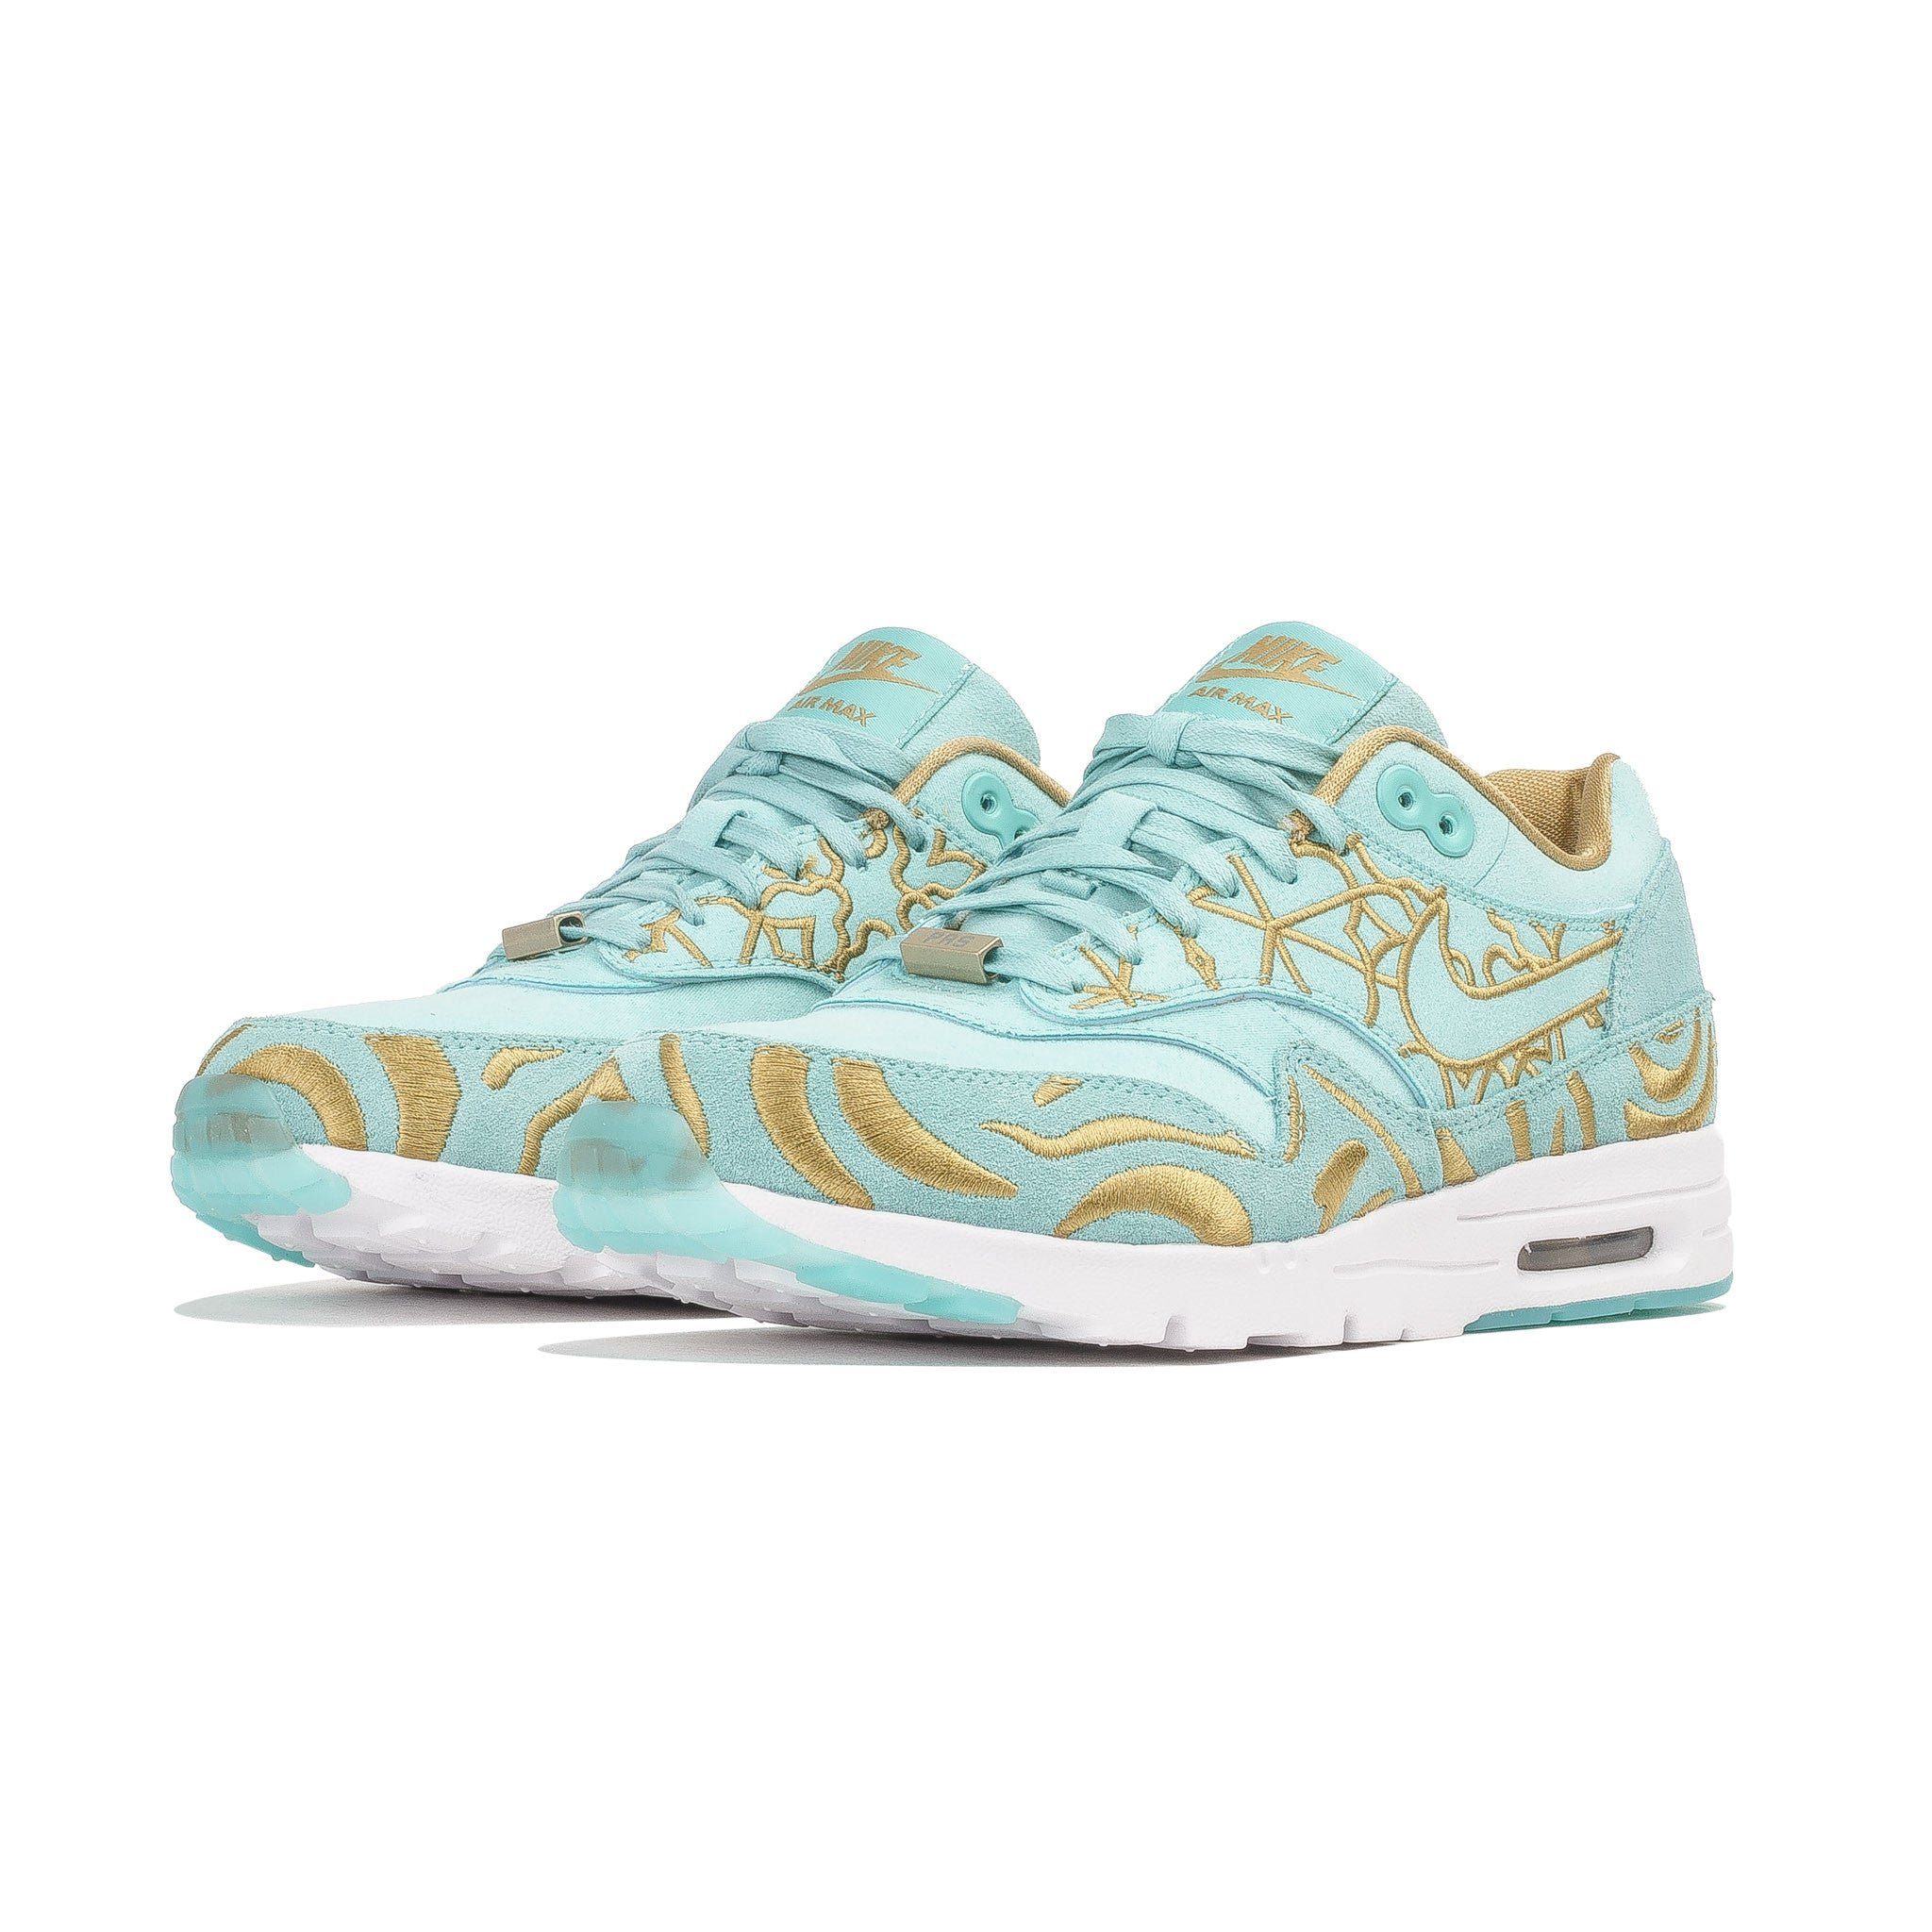 Air Max 1 Ultra Lotc (paris) Rencontre En Ligne